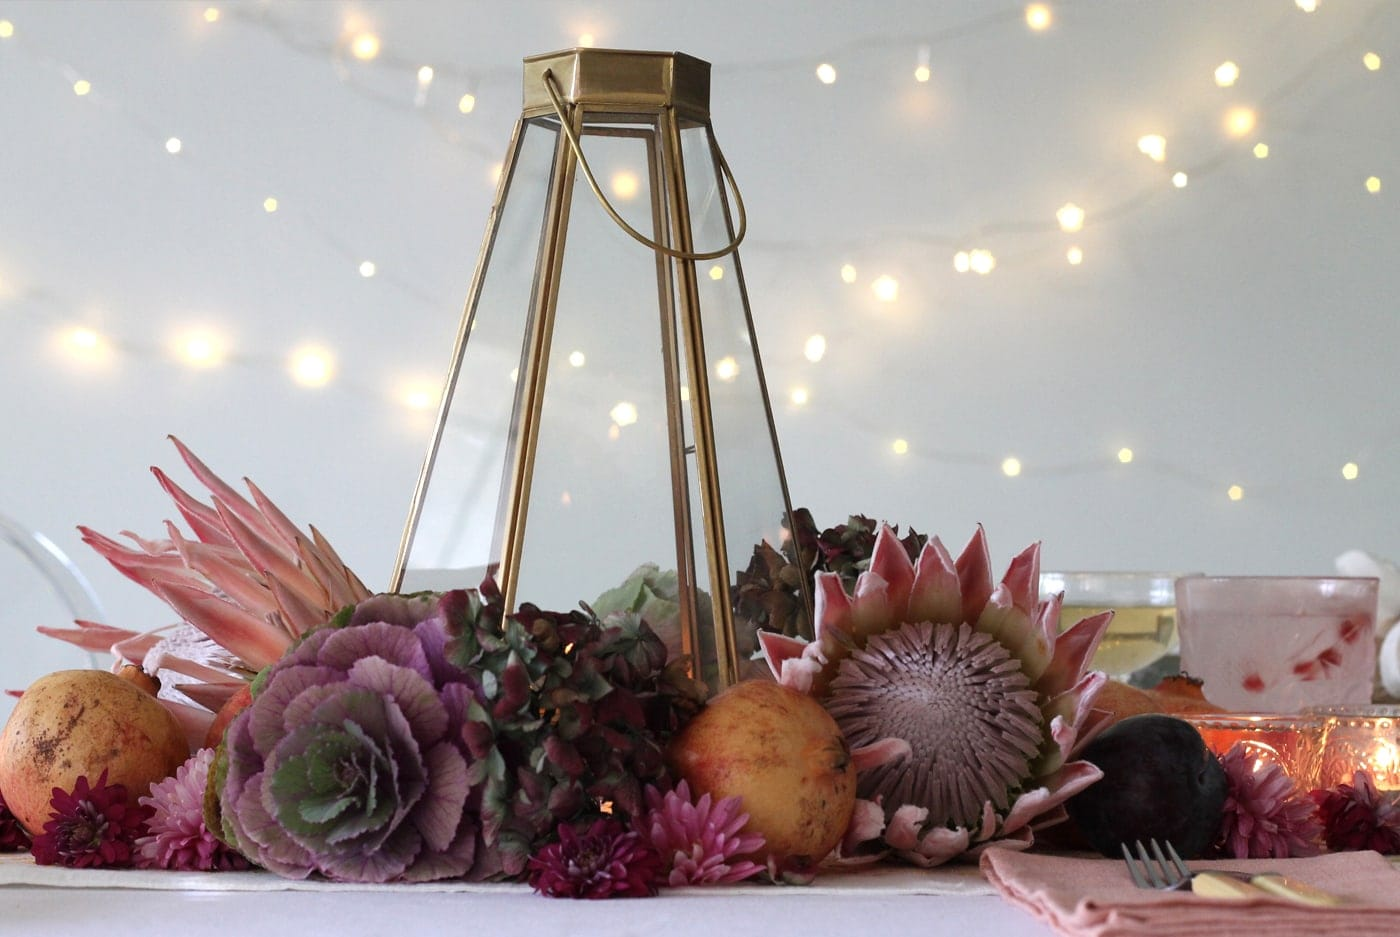 12 styled days of Christmas with West Elm | Lotts and Lots 5